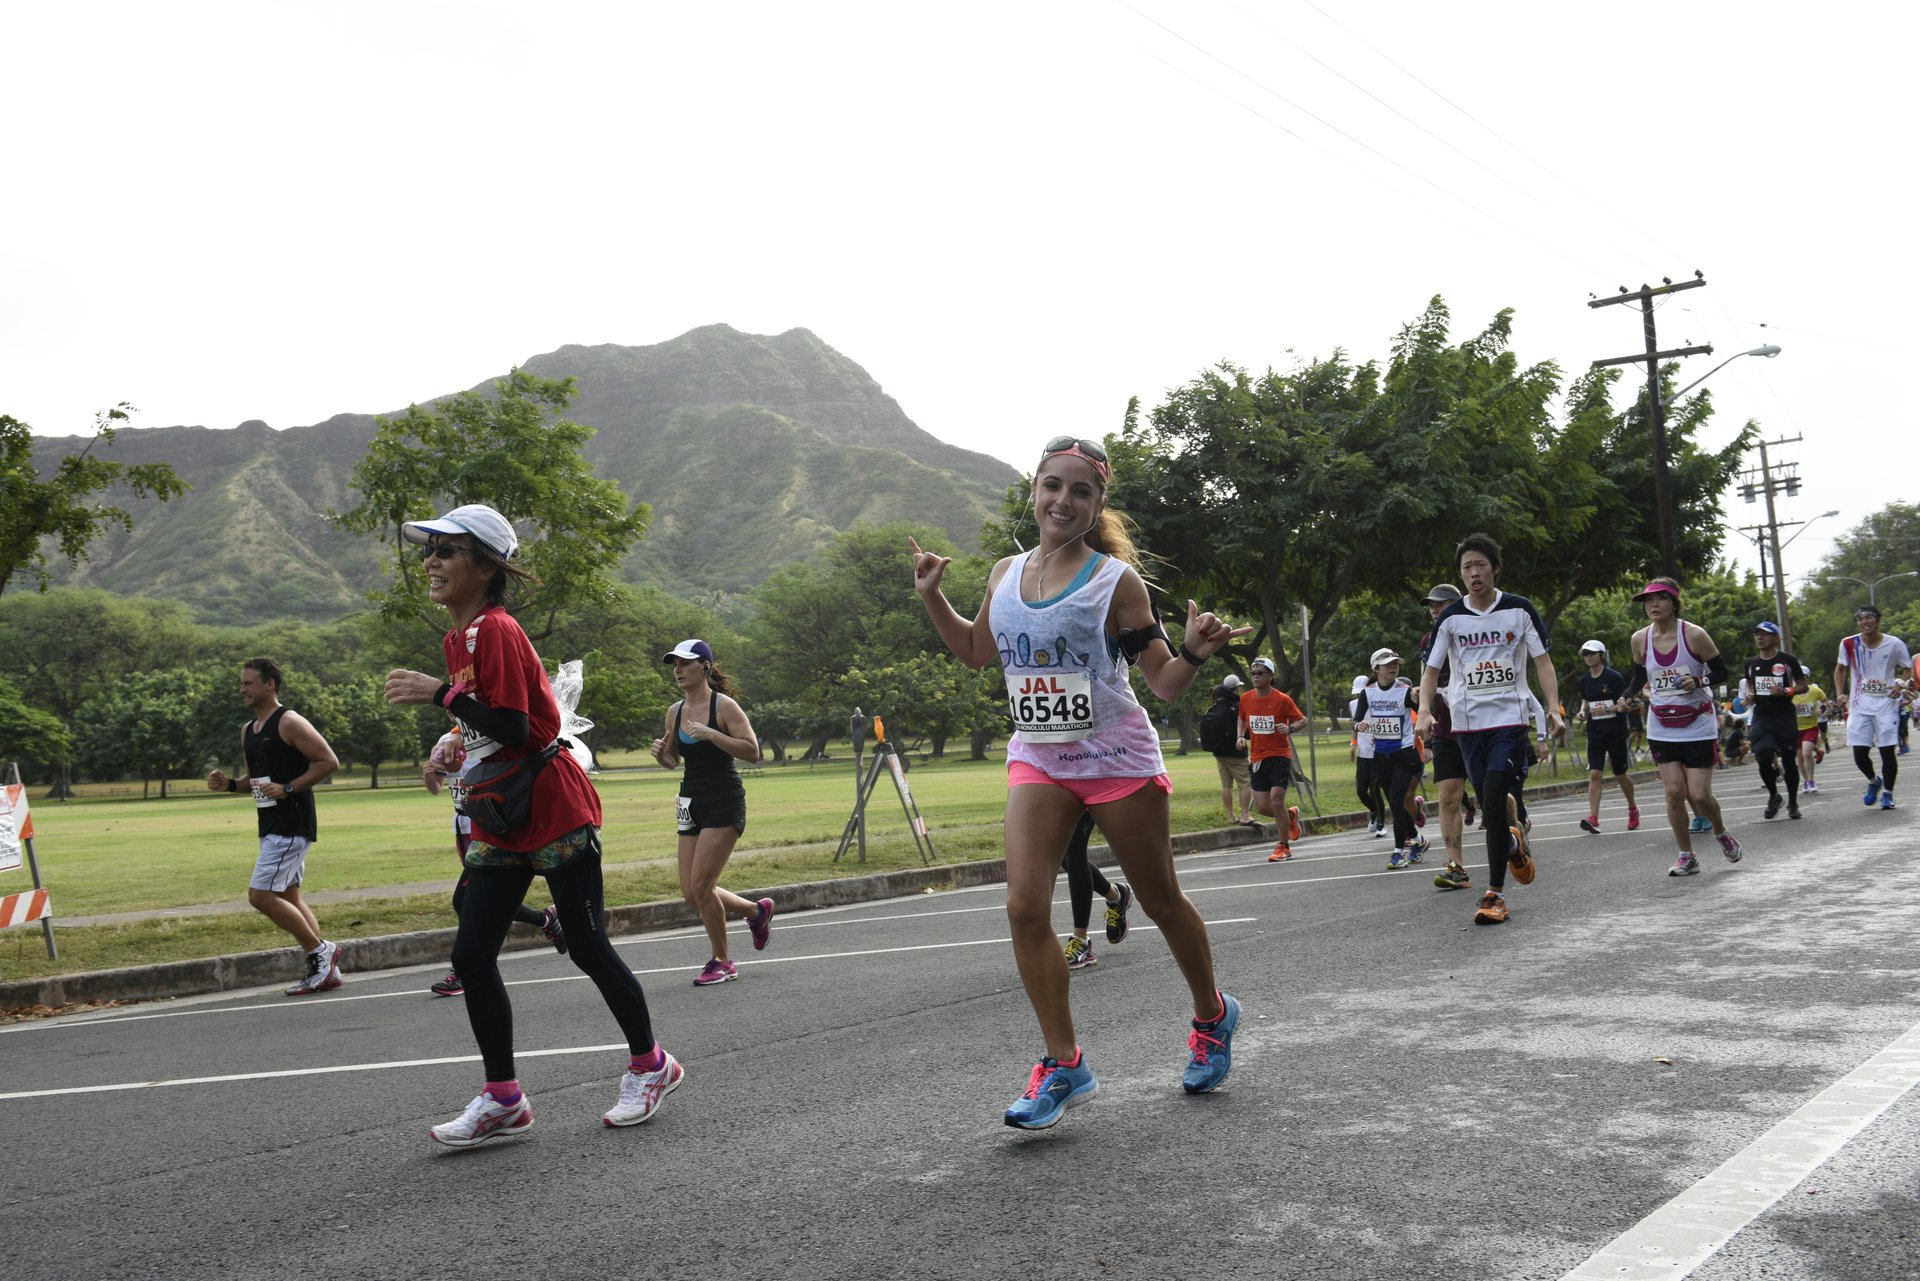 Best time to see Honolulu Marathon 2020